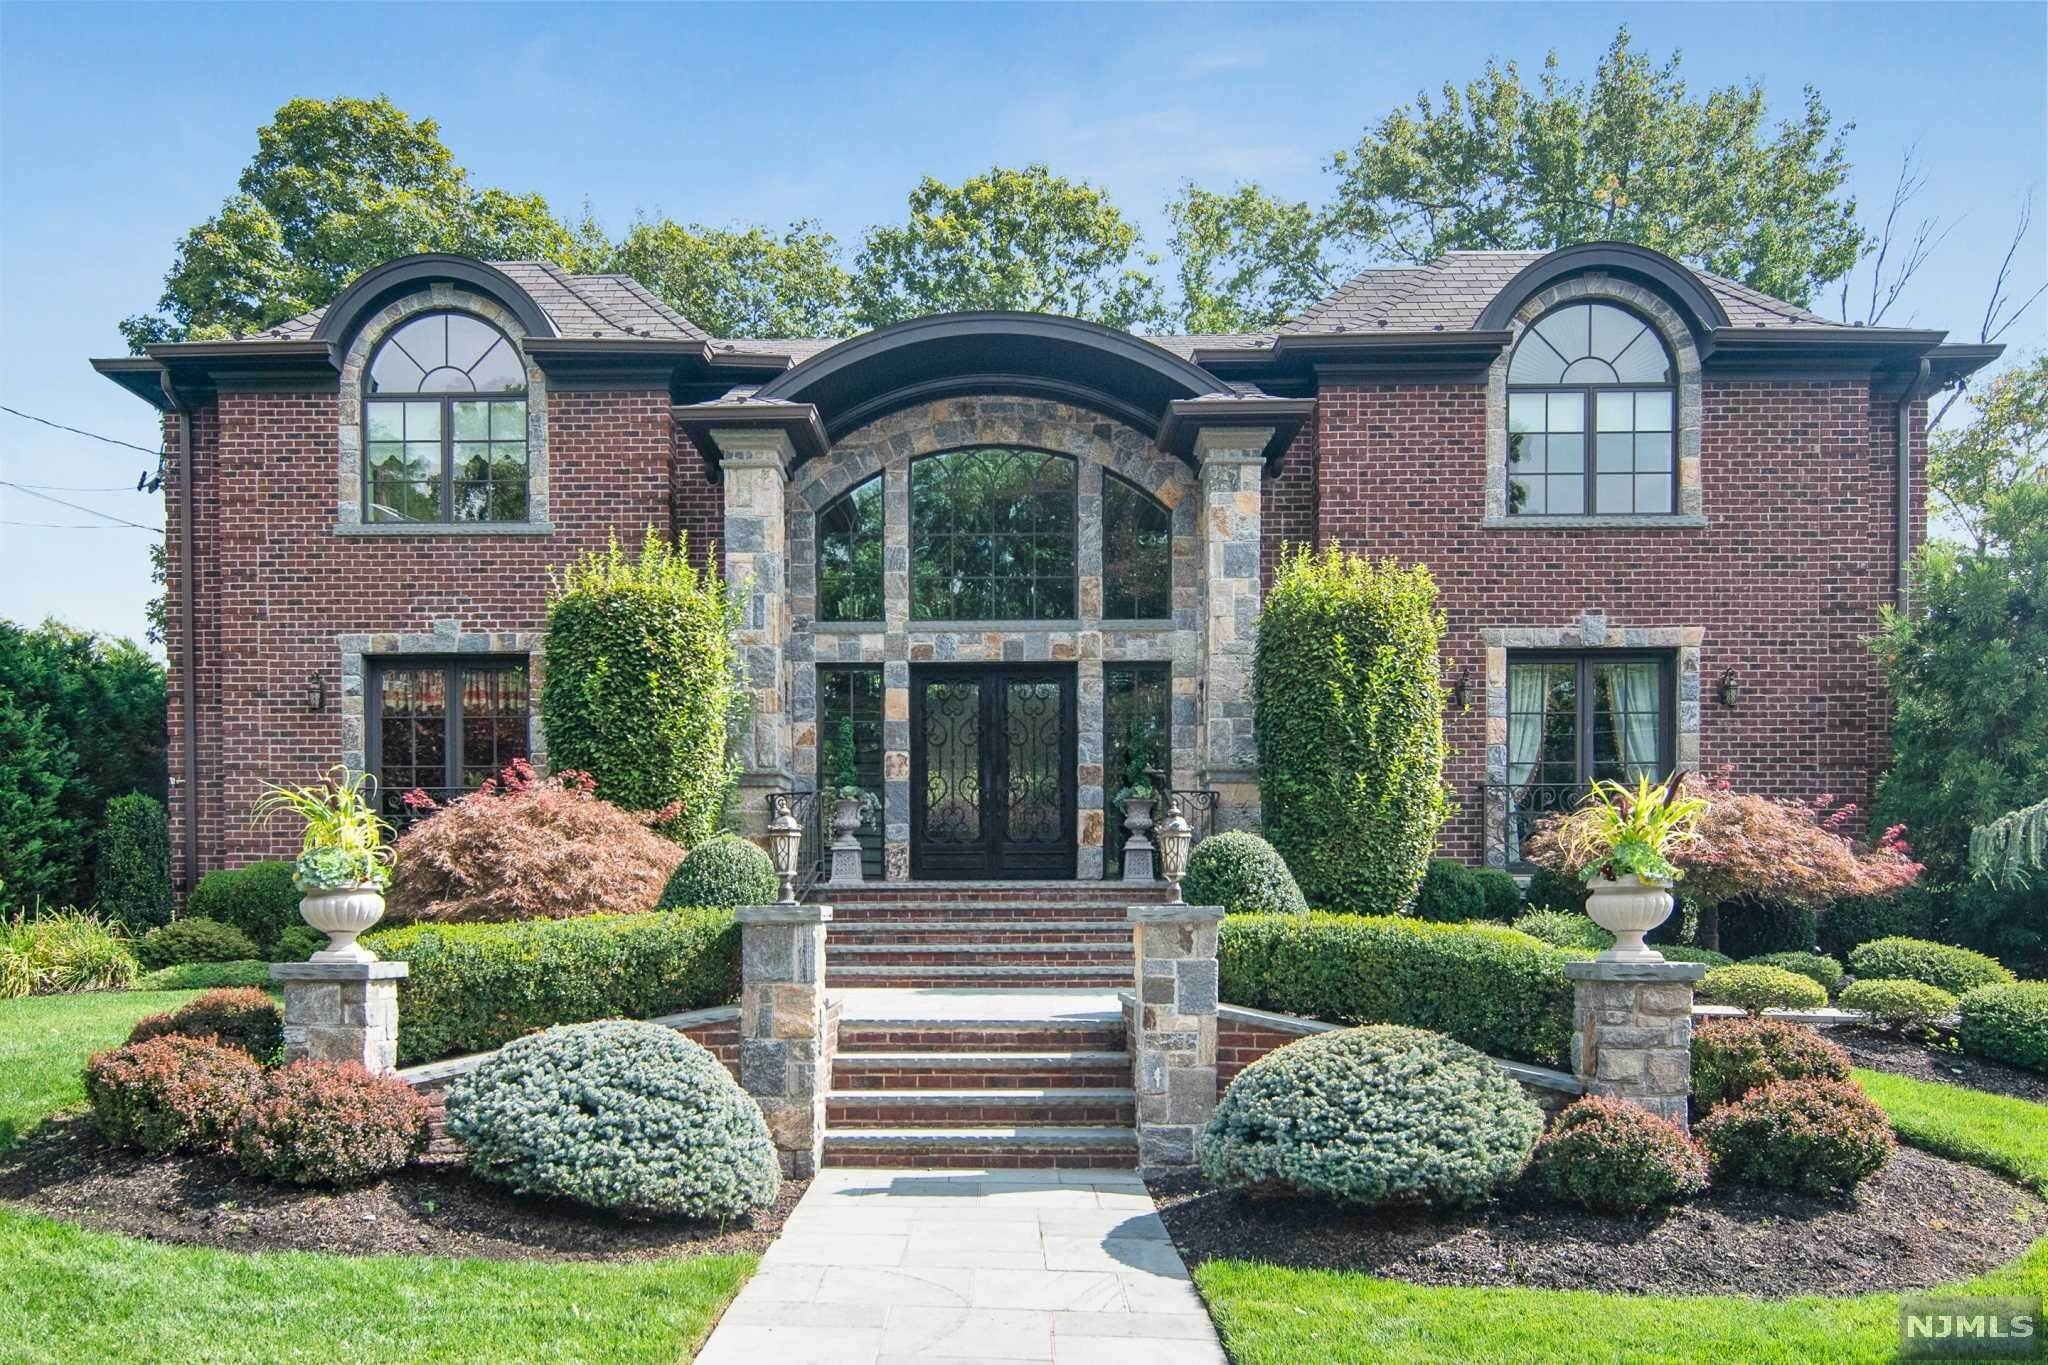 Single Family Home for Sale at 18 Maple Street Englewood Cliffs, New Jersey, 07632 United States